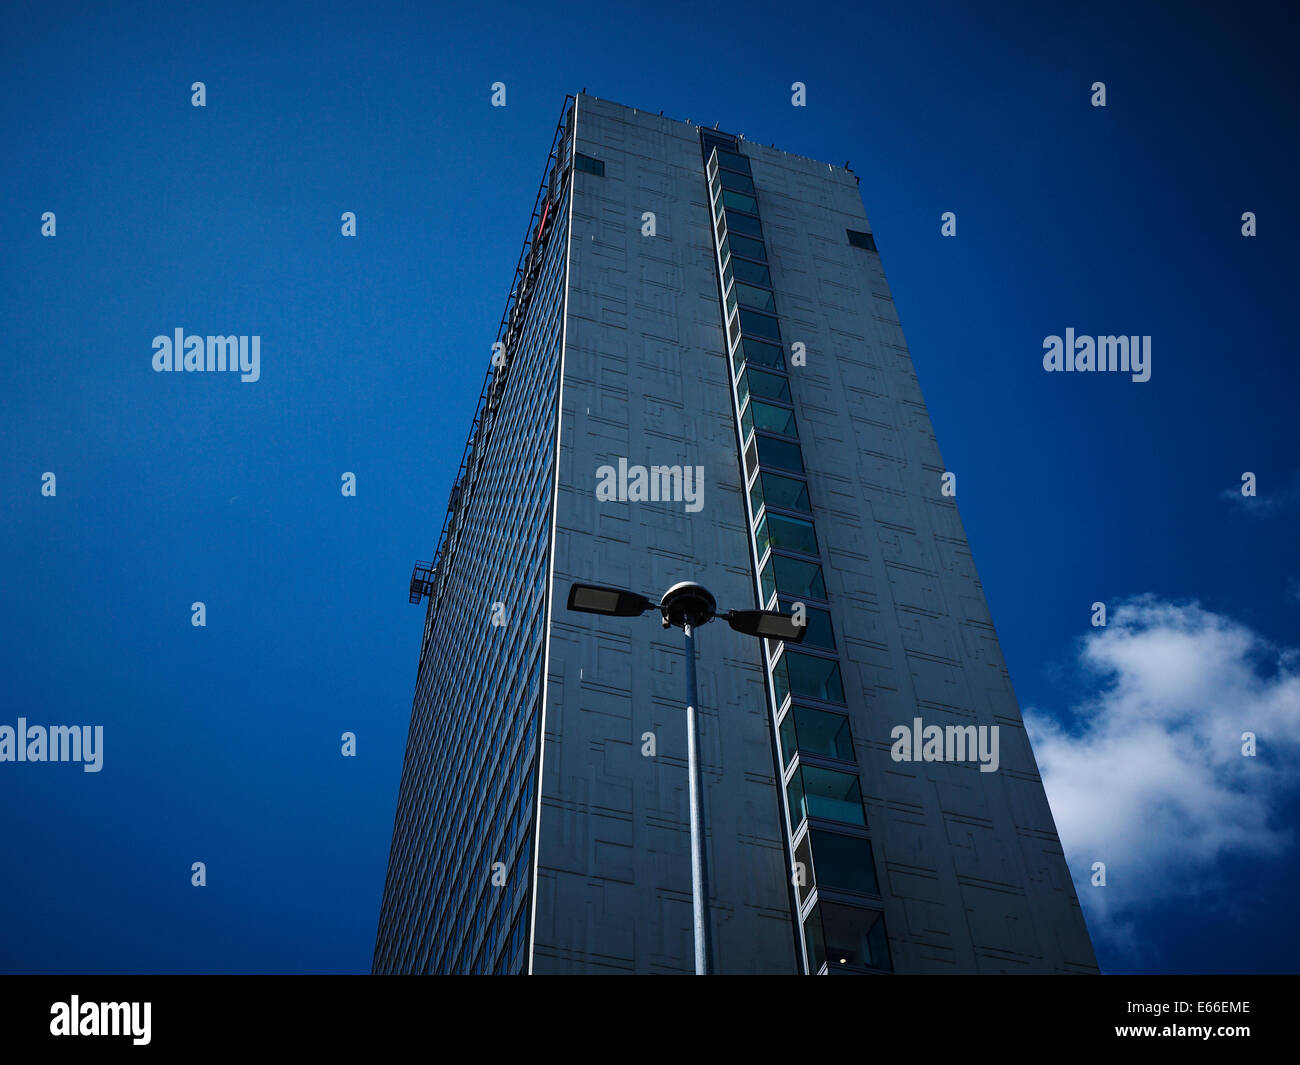 City tower in Manchester UK - Stock Image